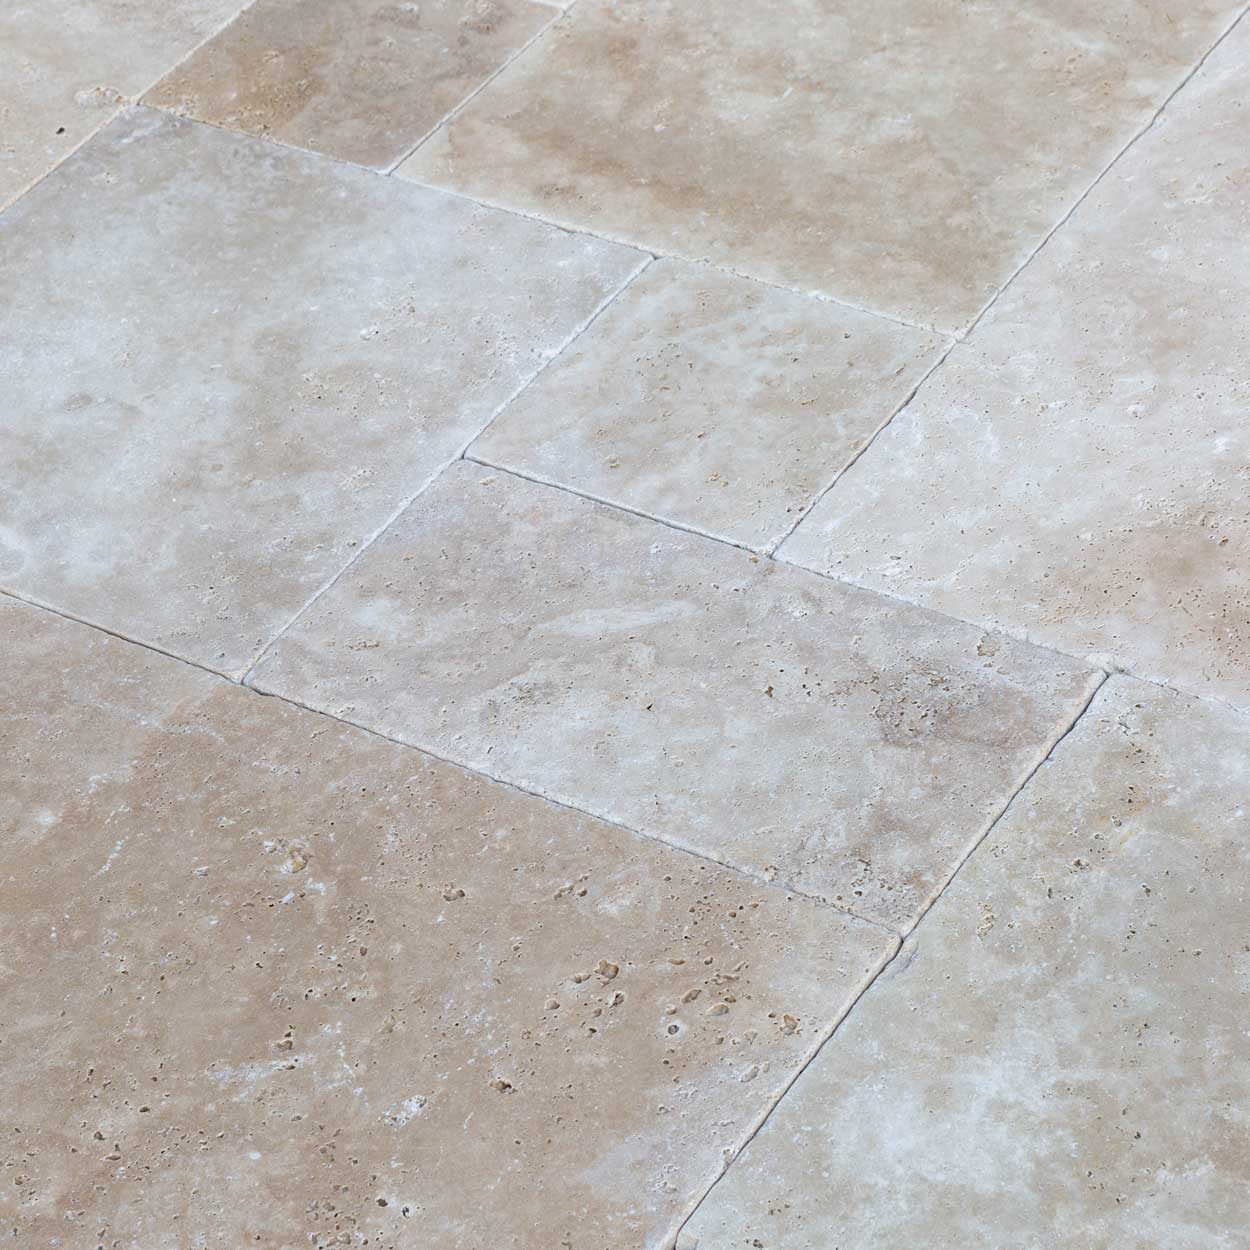 20012421-classic-light-antique-pattern-travertine-tiles-tumbled-chiseled-close-angle-www.thulahome.com